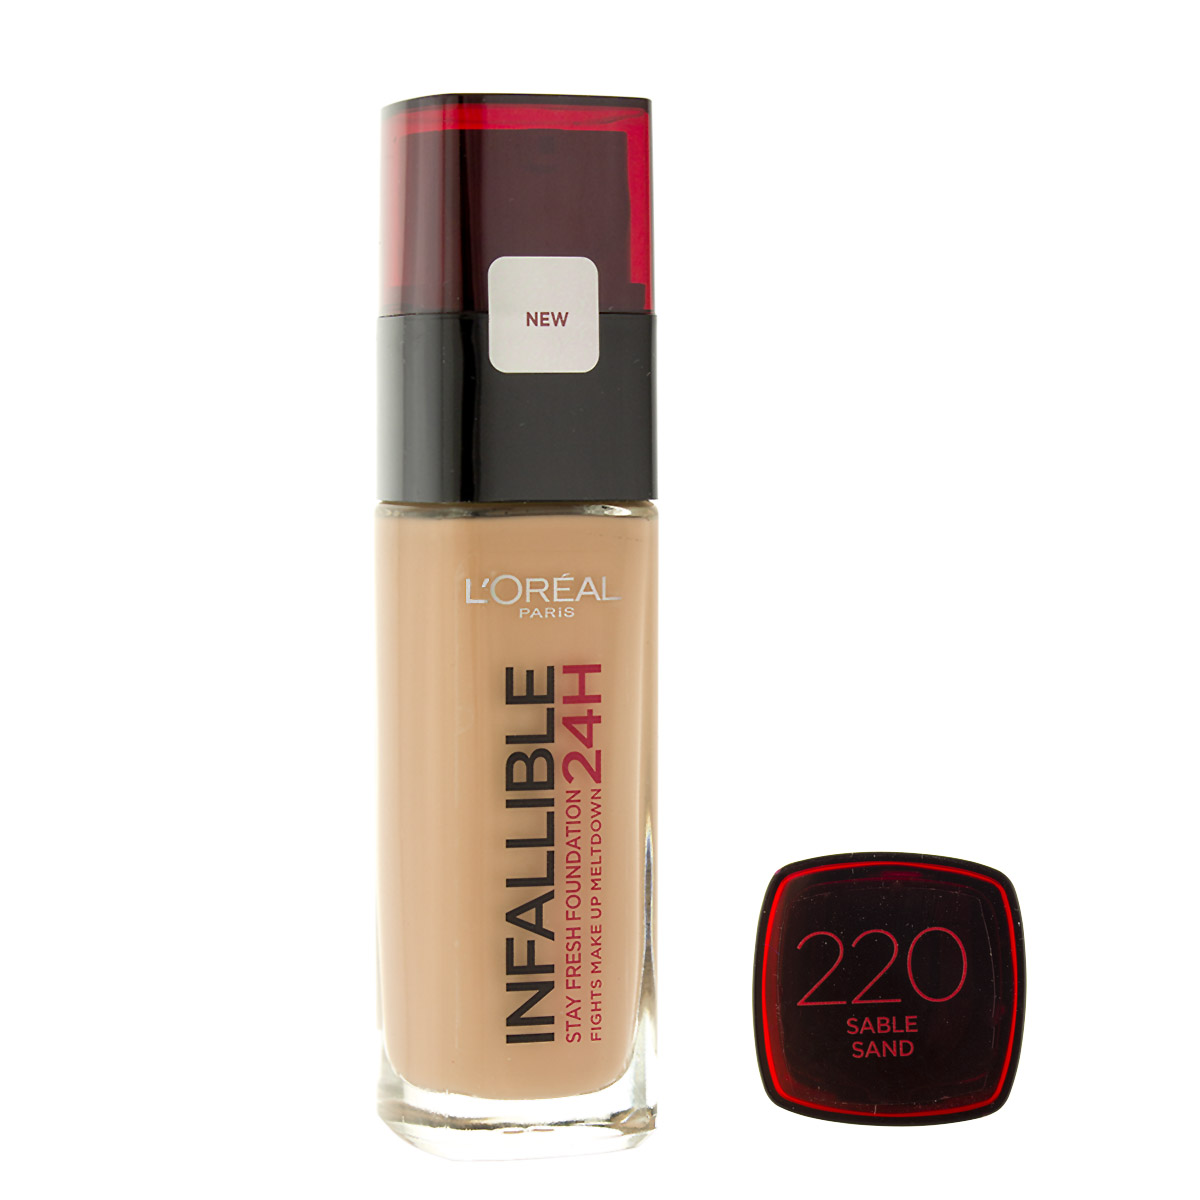 L´Oreal Paris Infallible 24H make-up (220 Sand) 30 ml